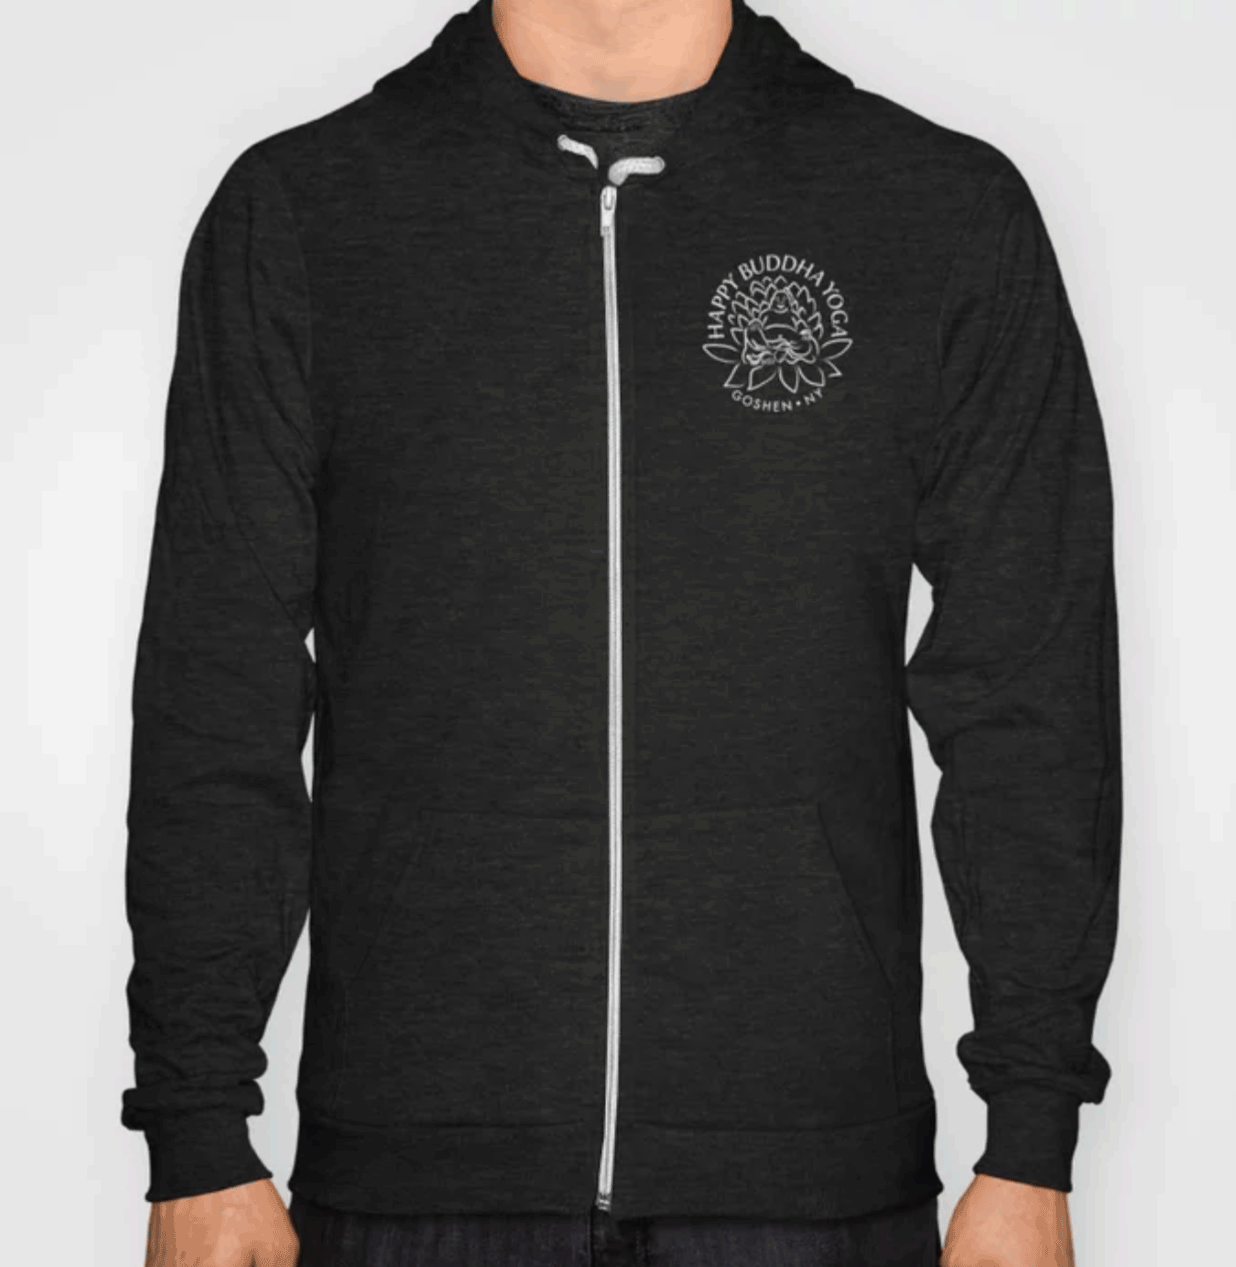 Comfy hoodies available in black, red, or grey